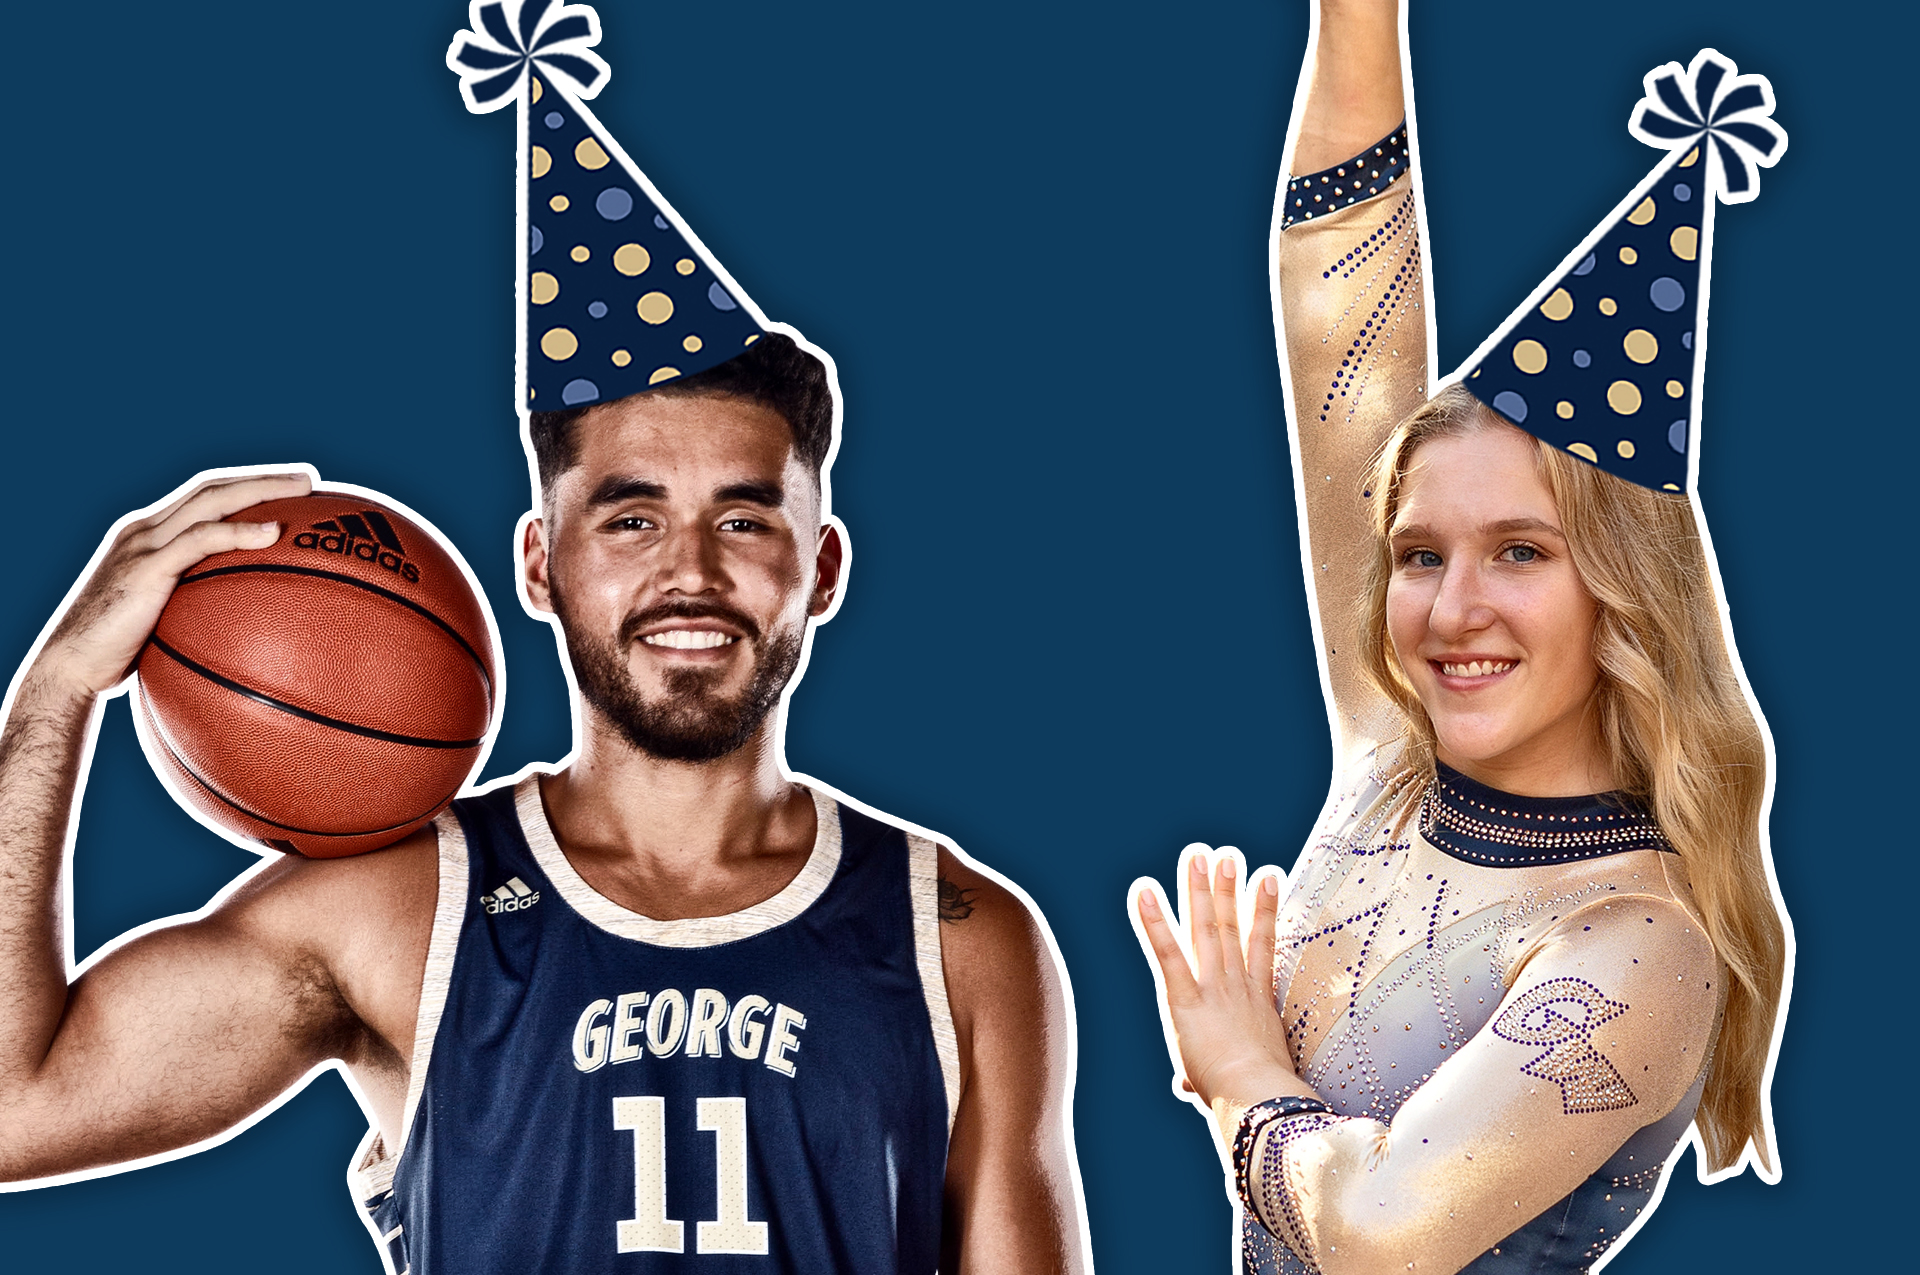 Basketball player and gymnast celebrating George's birthday